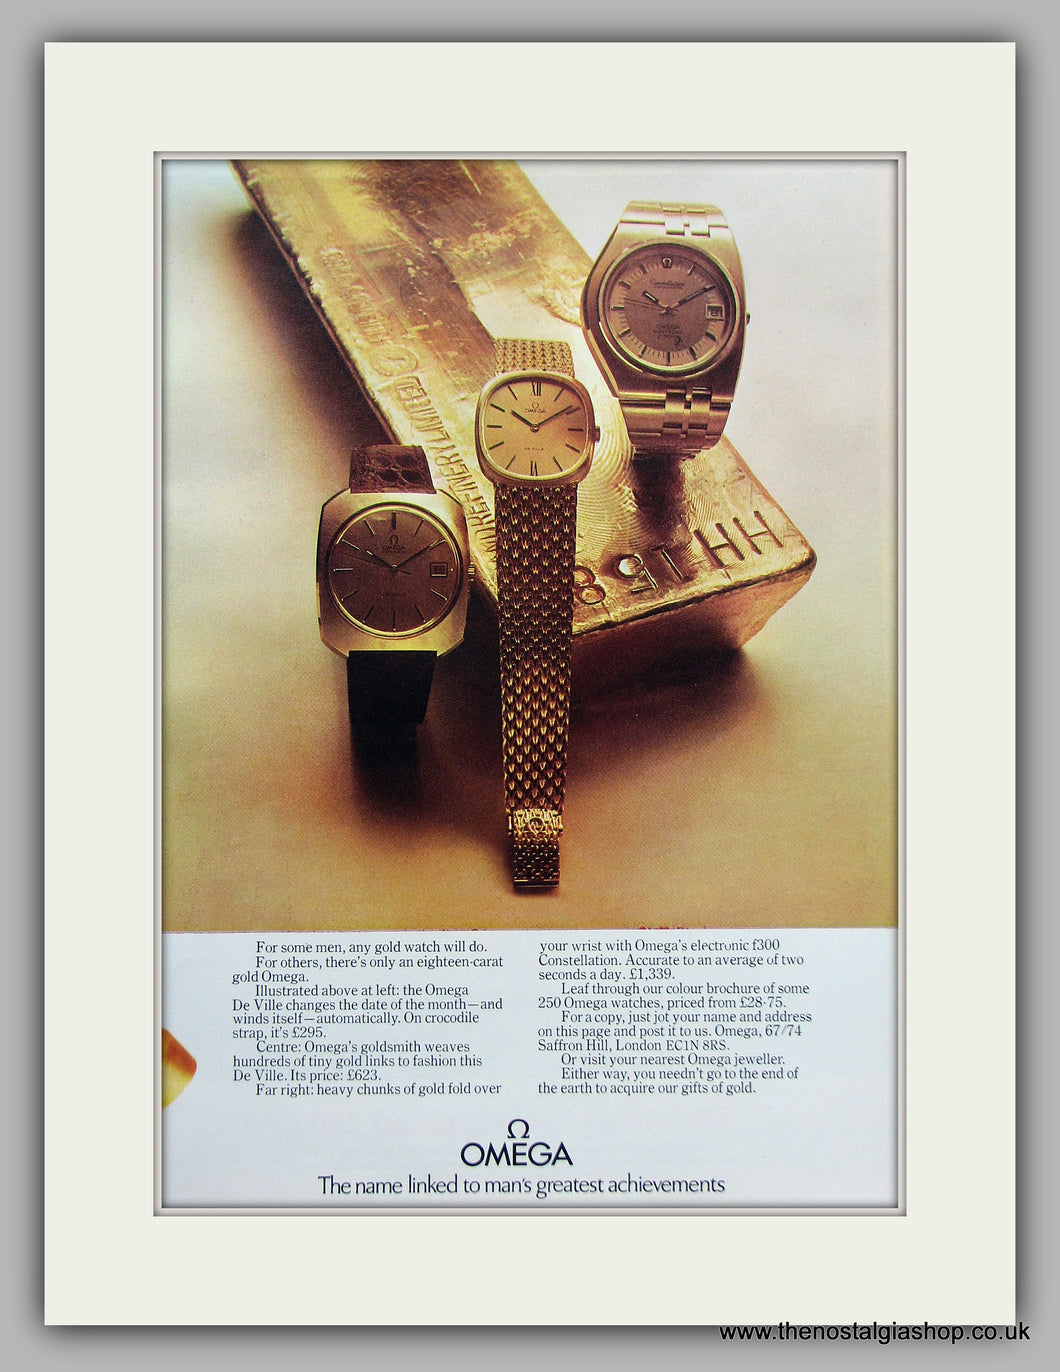 Omega Watches Original Advert 1973 (ref AD6868)